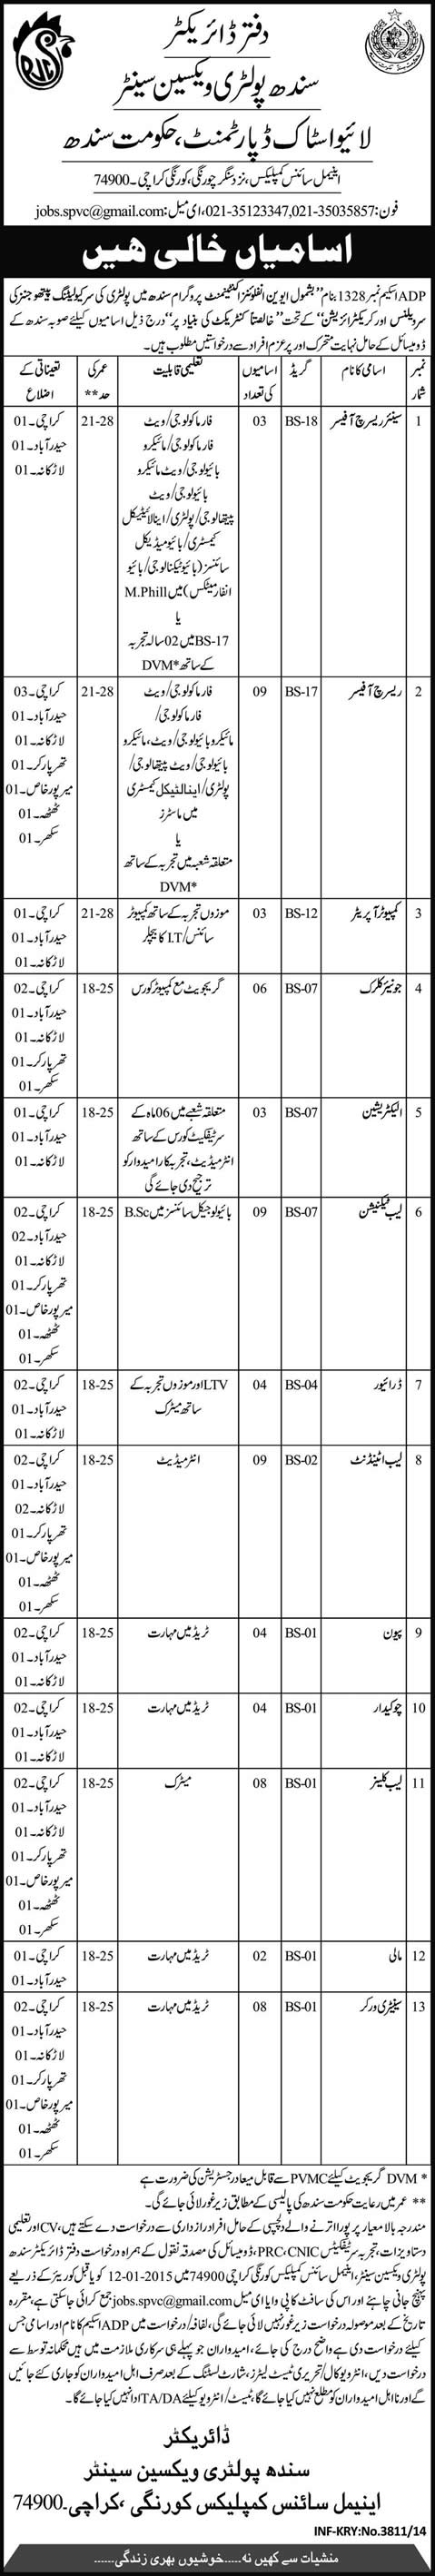 Sindh Poultry Vaccine Centre Jobs 2014 December Livestock Department Karachi & Other Cities